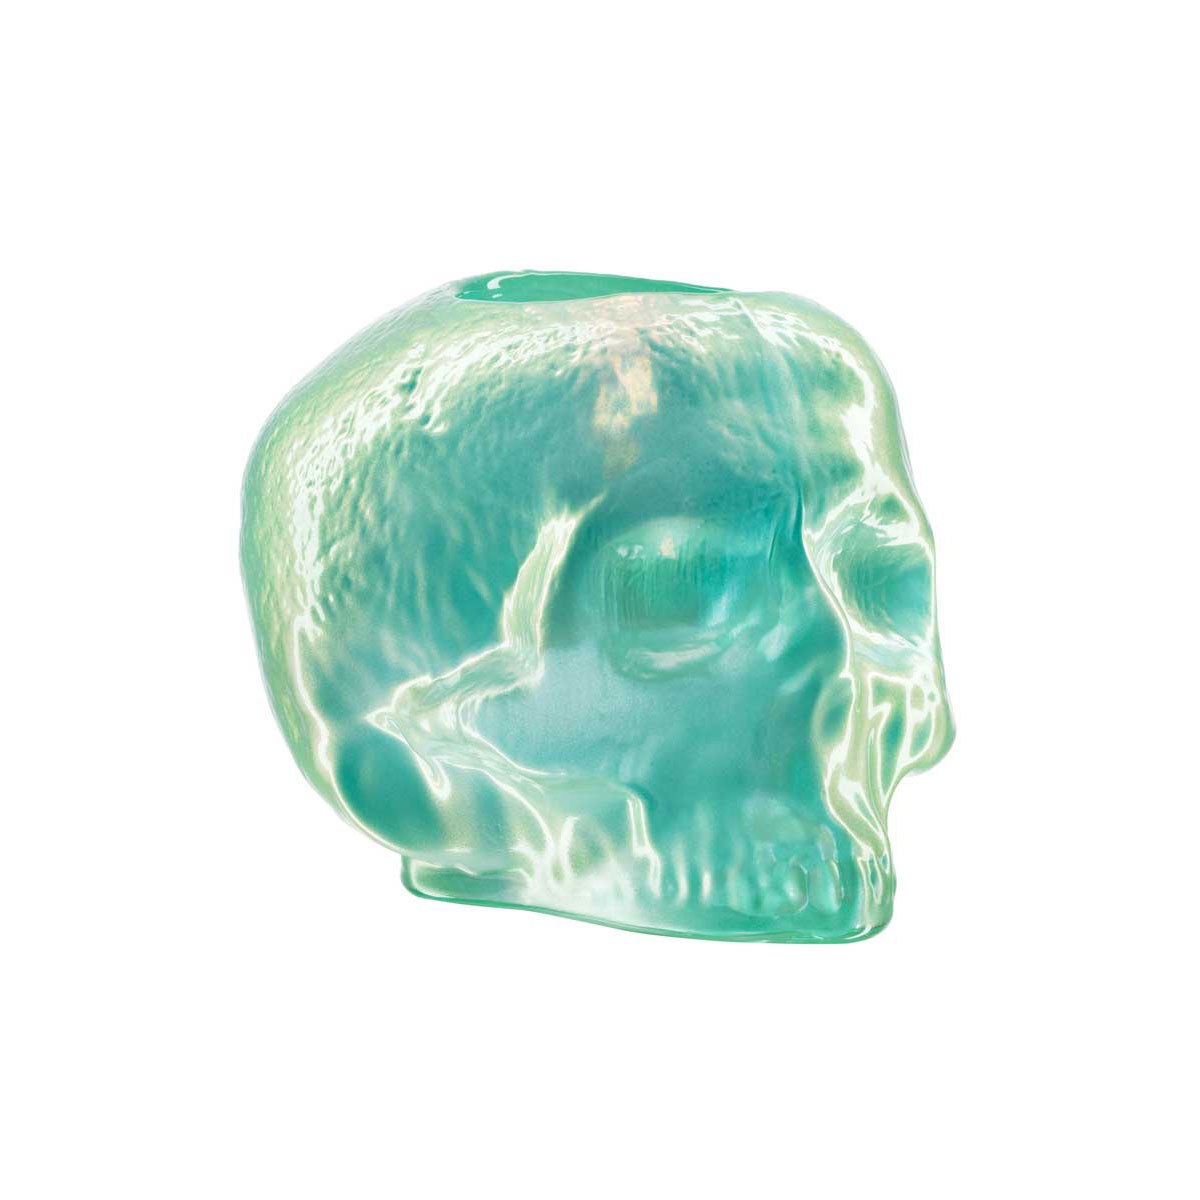 Kosta Boda Still Life Skull Crystal Votive, Light Green